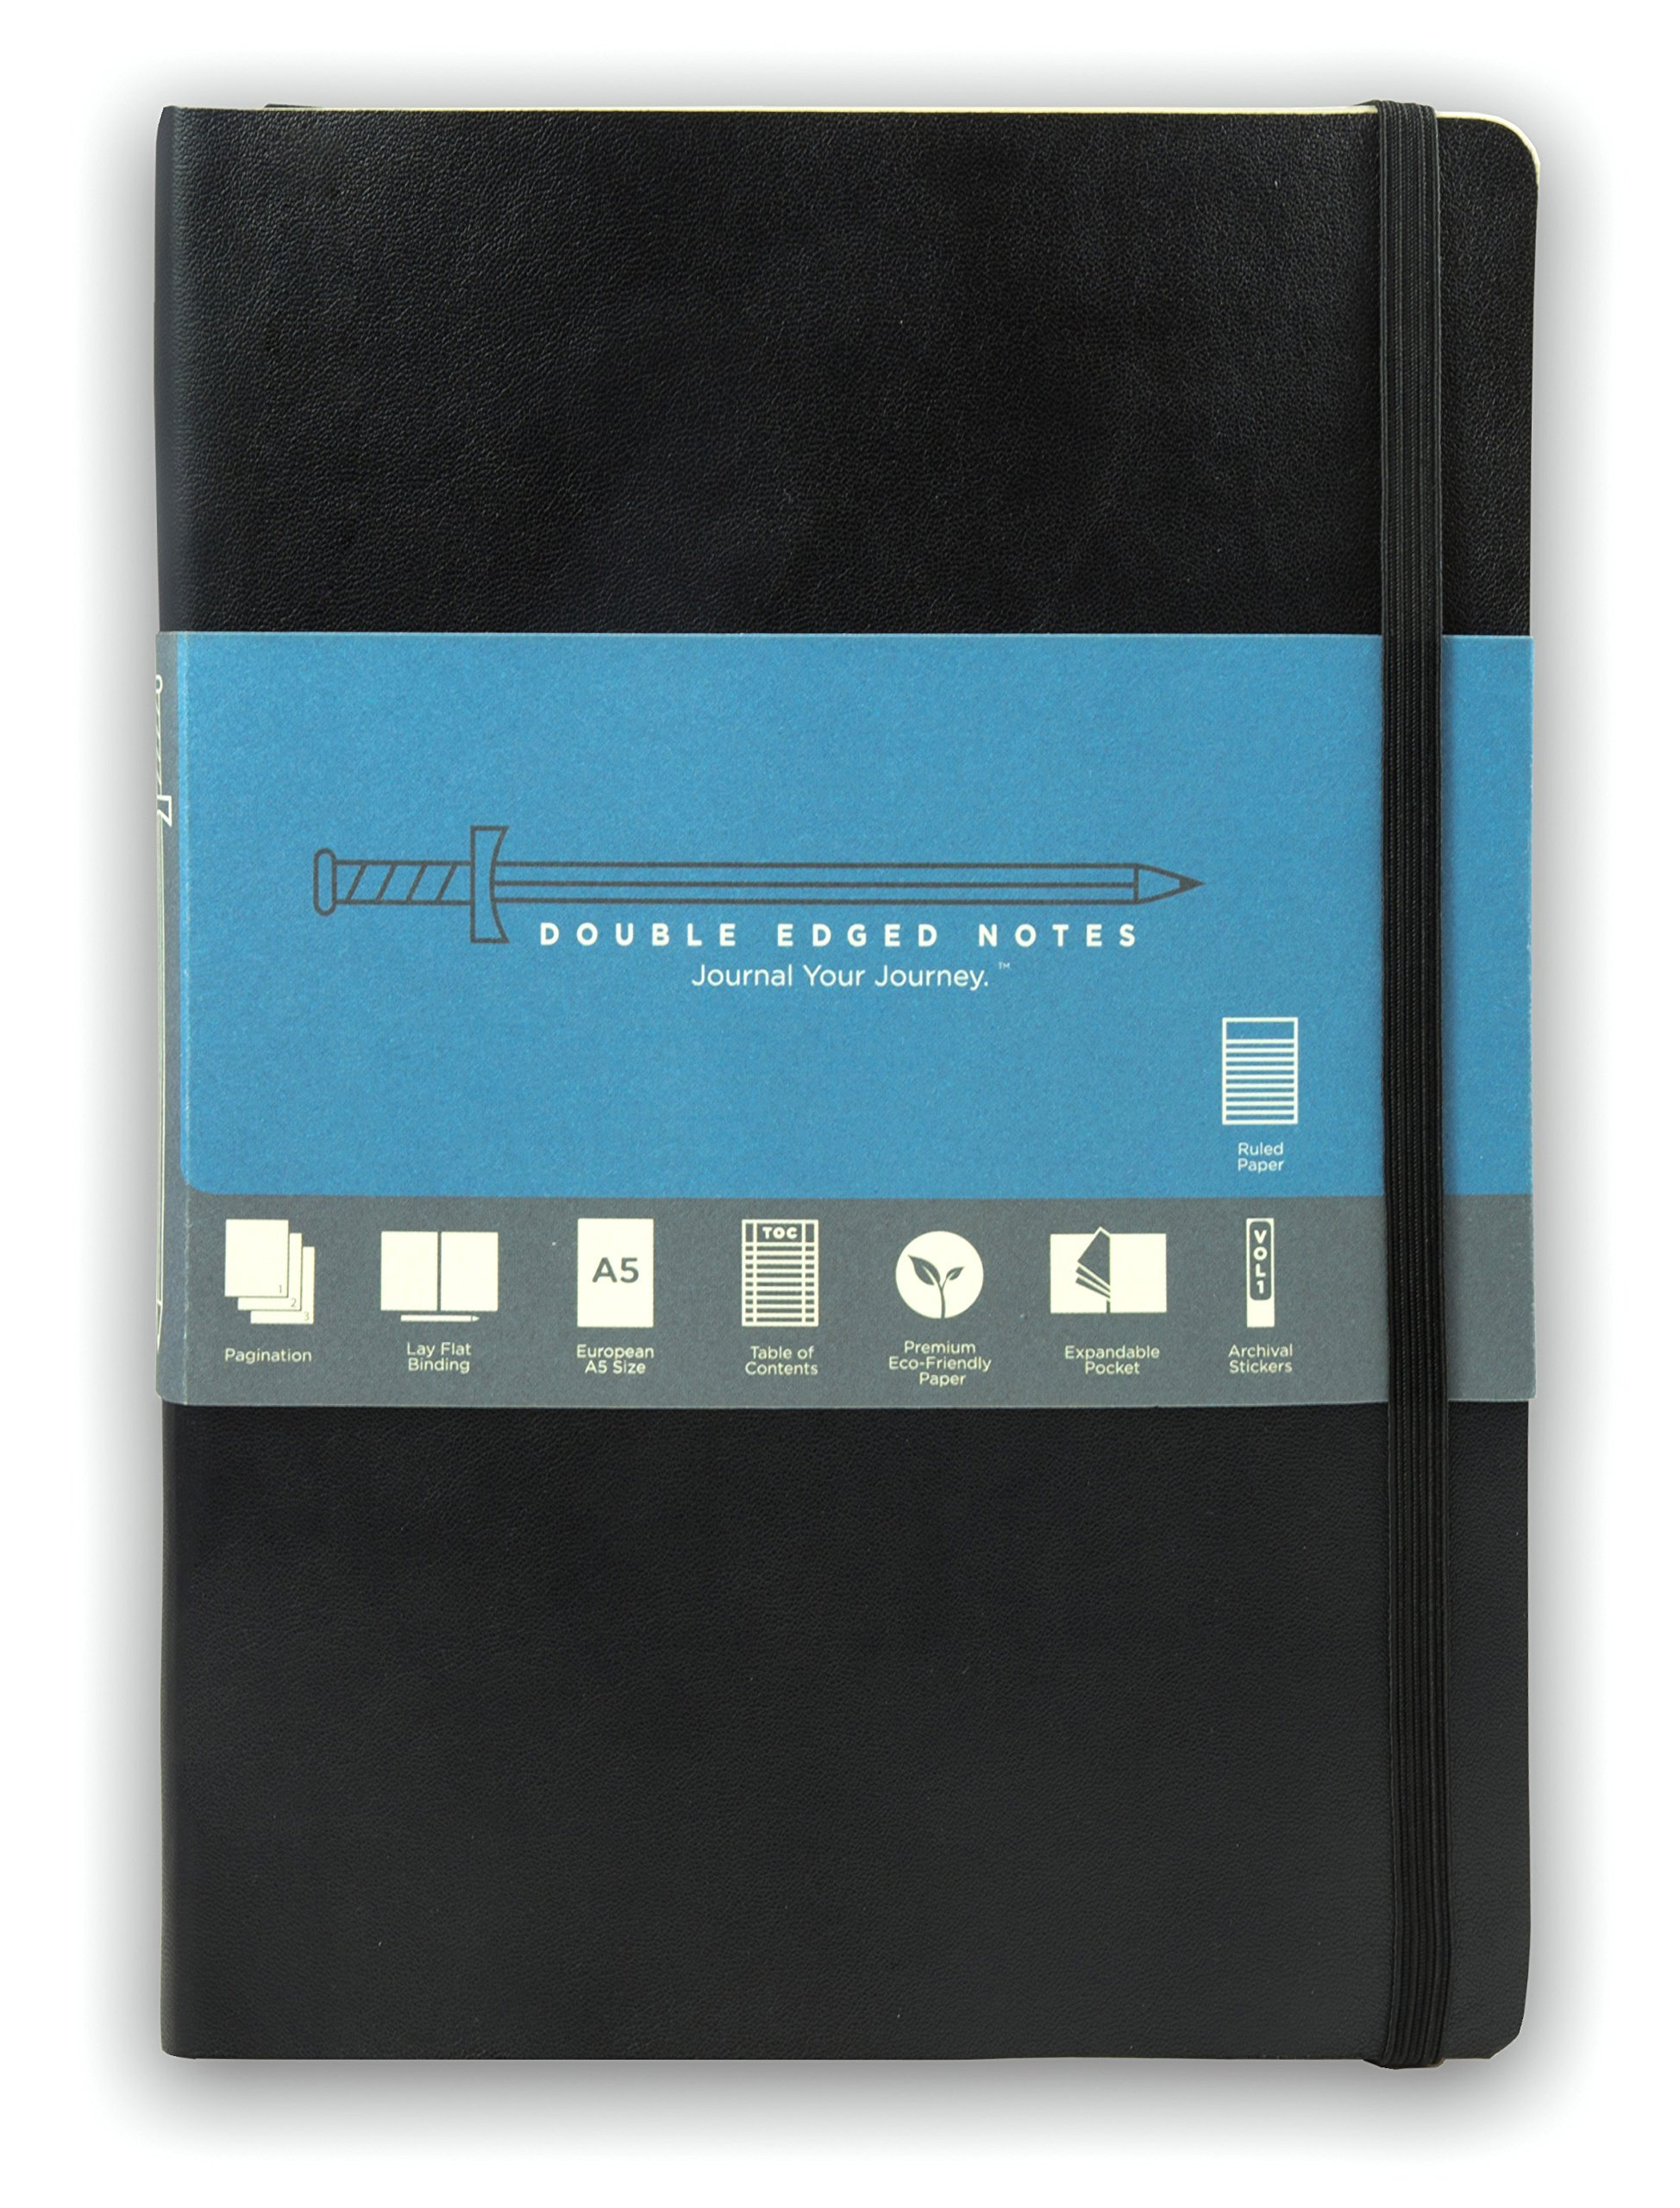 Black Softcover Journal with Ruled Pages: DIY Table of Contents, 185 Numbered Pages, Archival Stickers, Premium Paper 5.75'' x 8.25'', Pocket, Bookmark. Perfect Bible Journal or Diary.